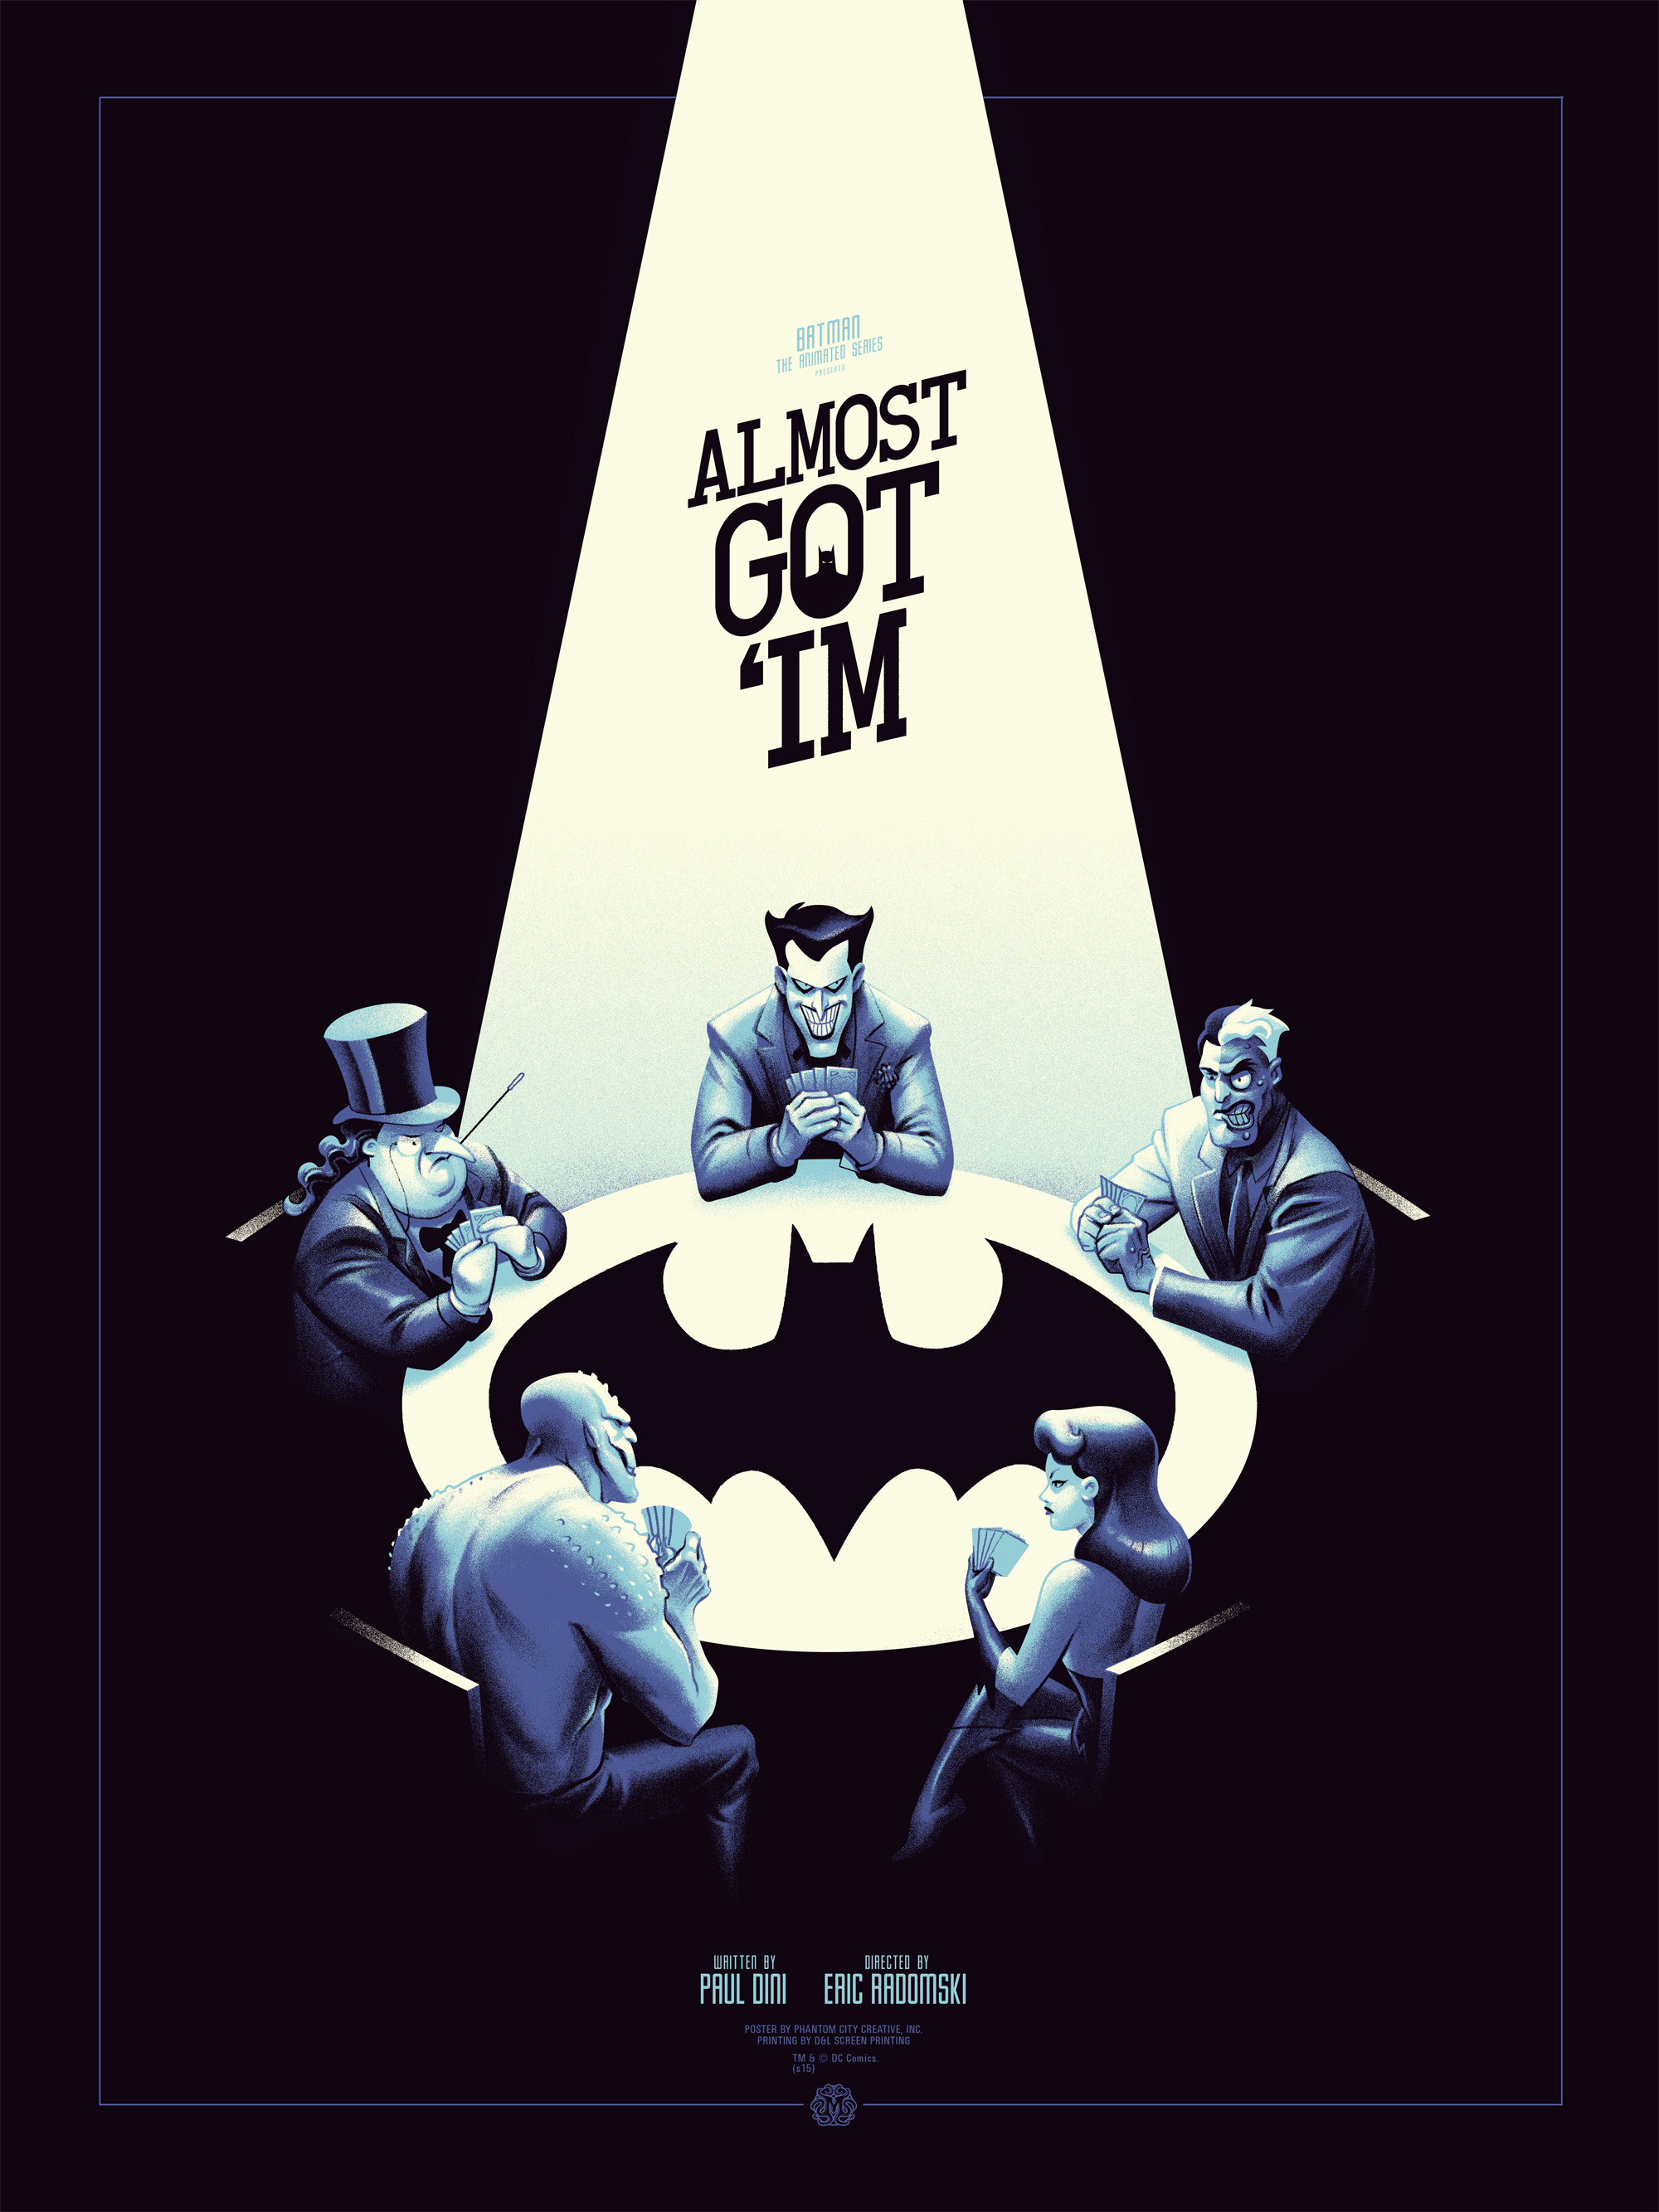 "Batman: The Animated Series - Almost Got 'Im by Phantom City Creative. 18""x24"" screen print. Hand numbered. Edition of 250. Printed by D&L Screenprinting. $45"